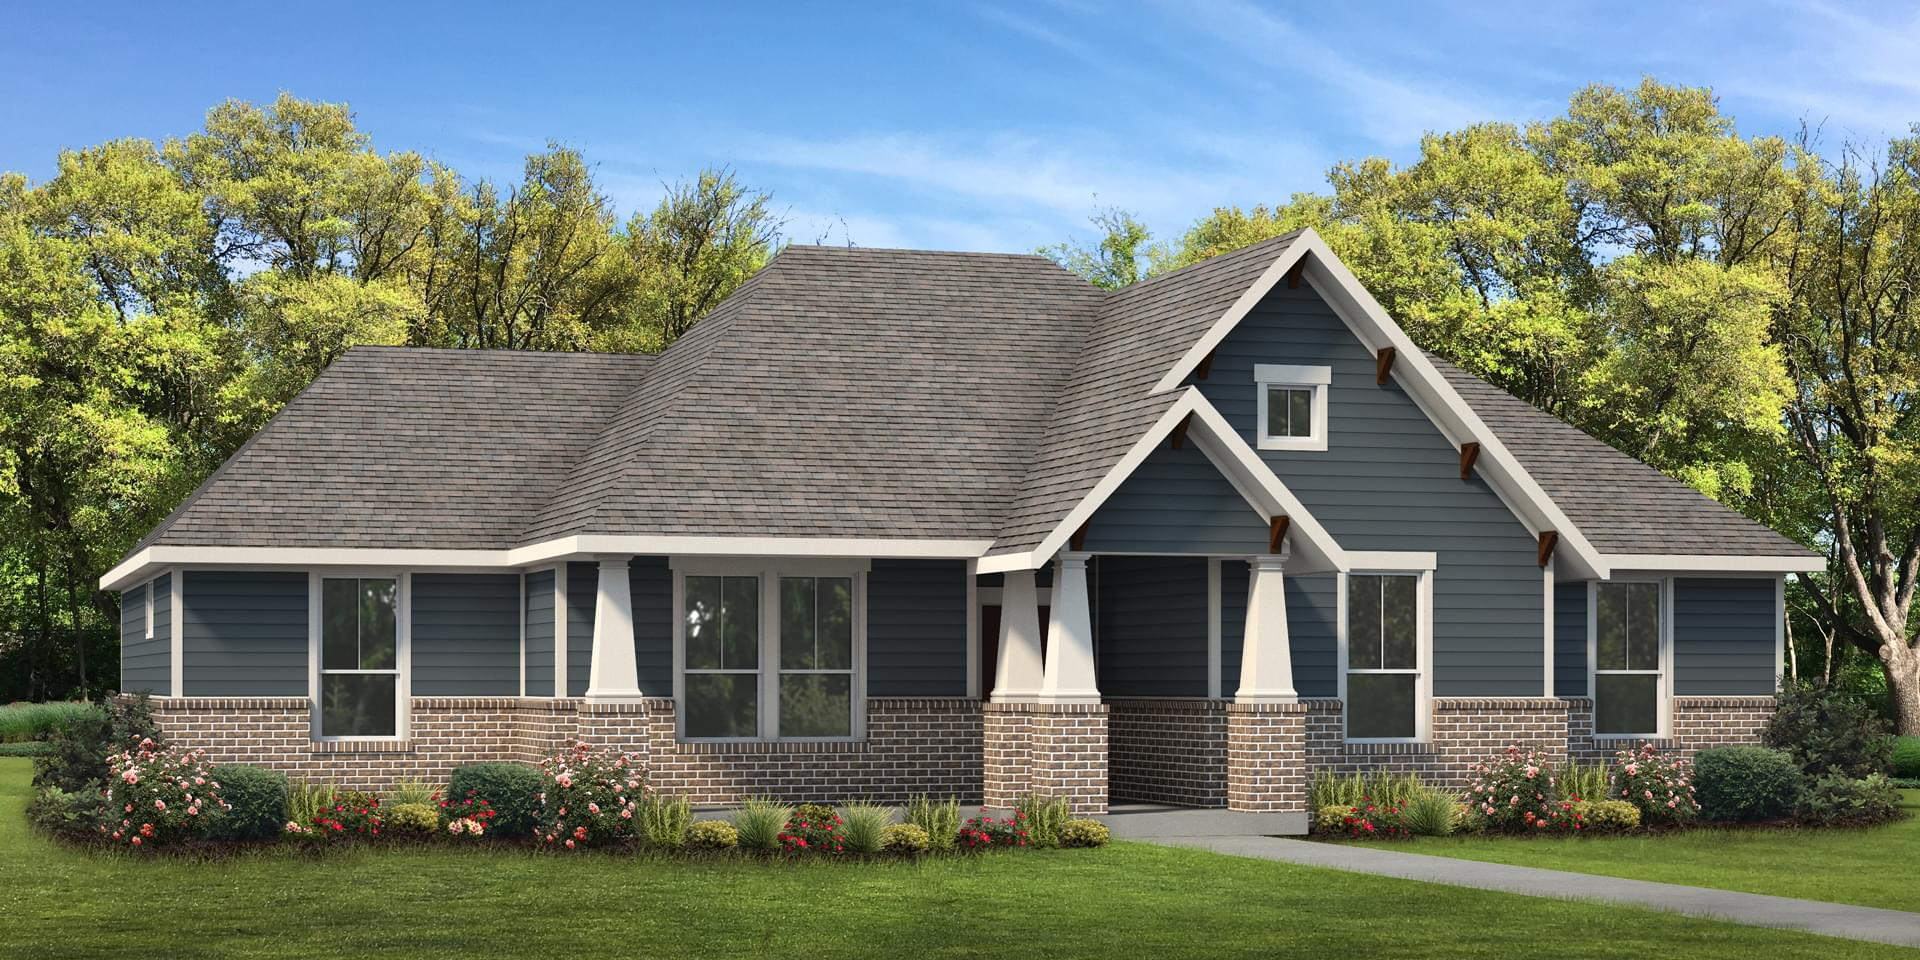 The Angelina Custom Home Plan from Tilson Homes